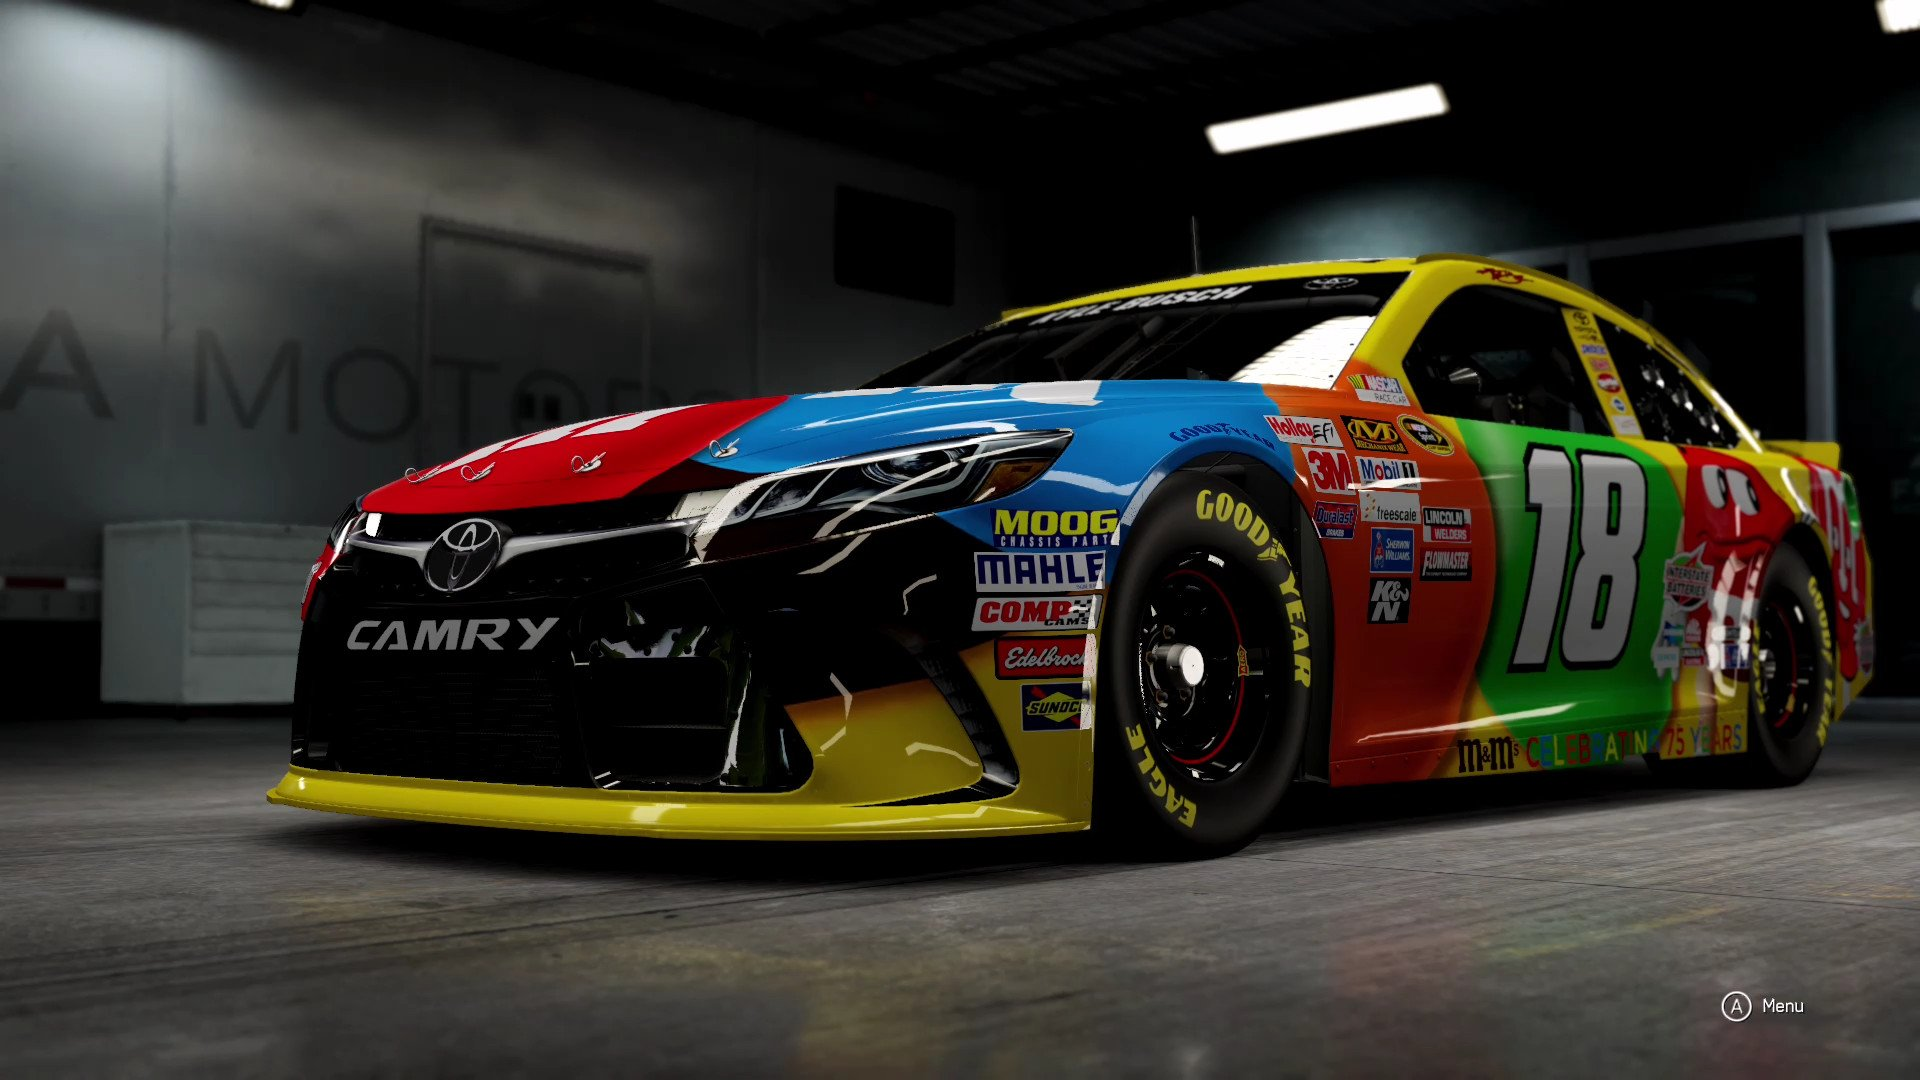 Wallpaper Mobil Sport Hd Review Forza Motorsport 6 Nascar Expansion Is A Great